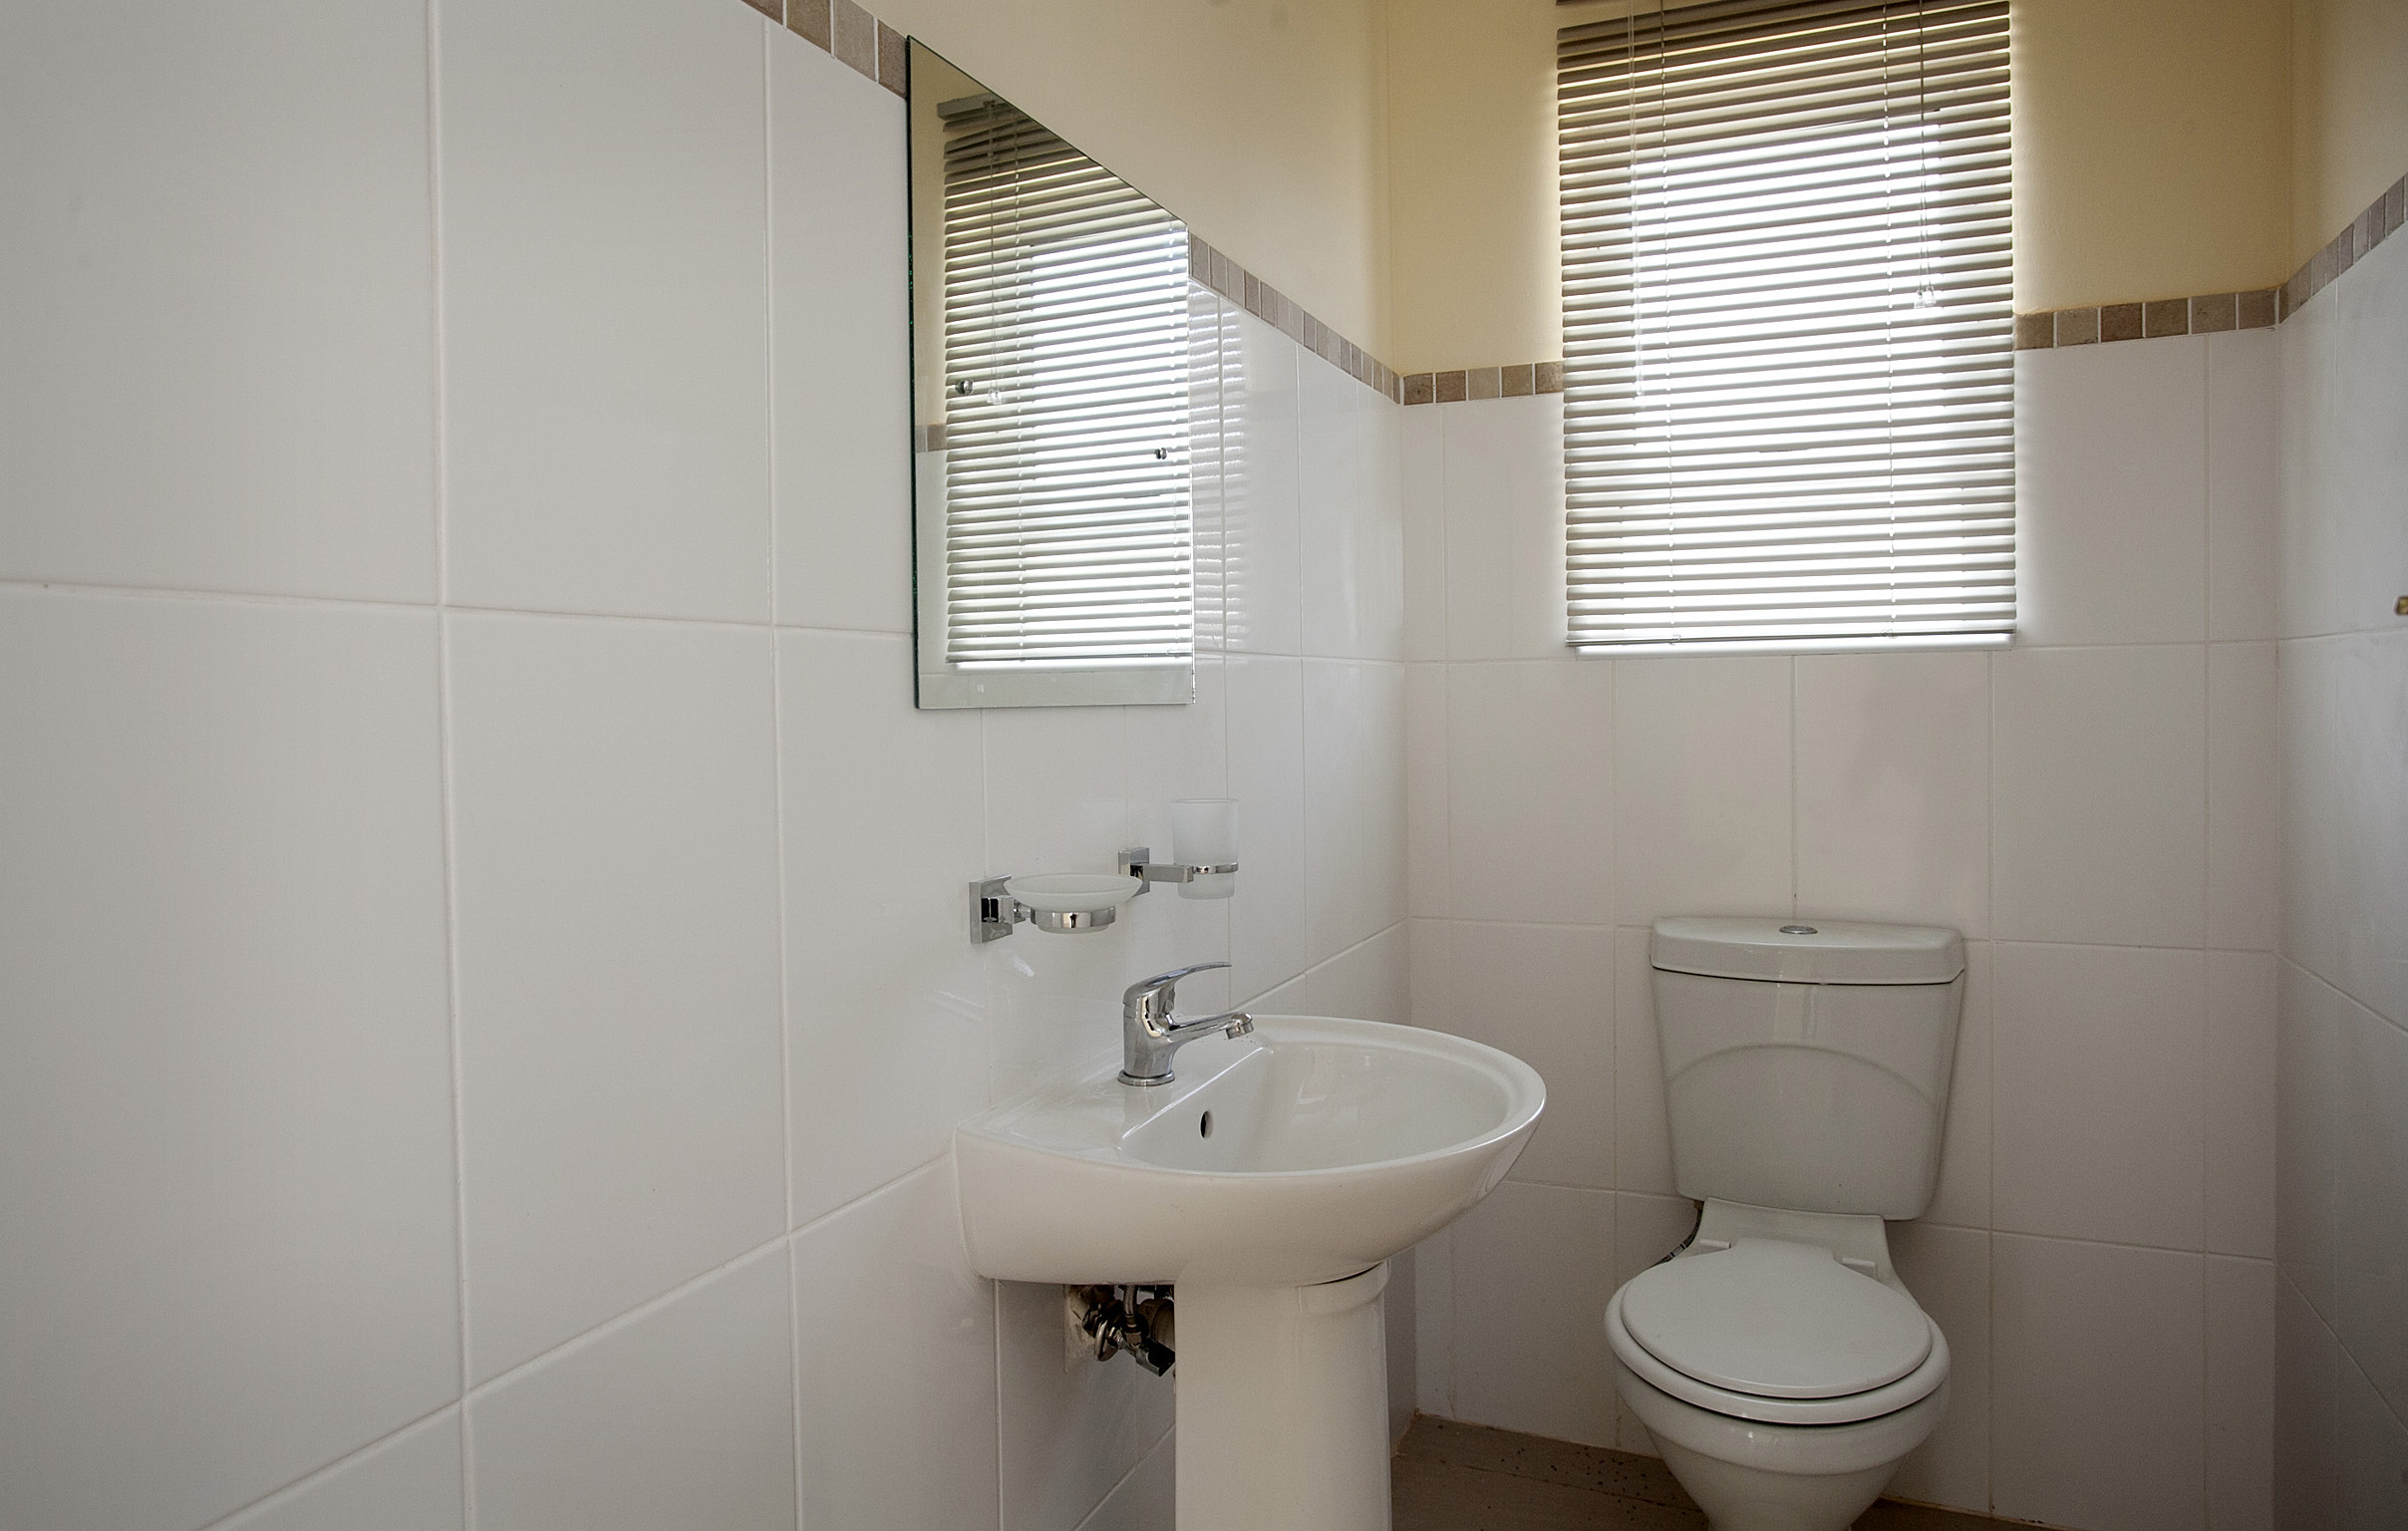 4 Bedroom House for sale in Lorraine ENT0068019 : photo#16